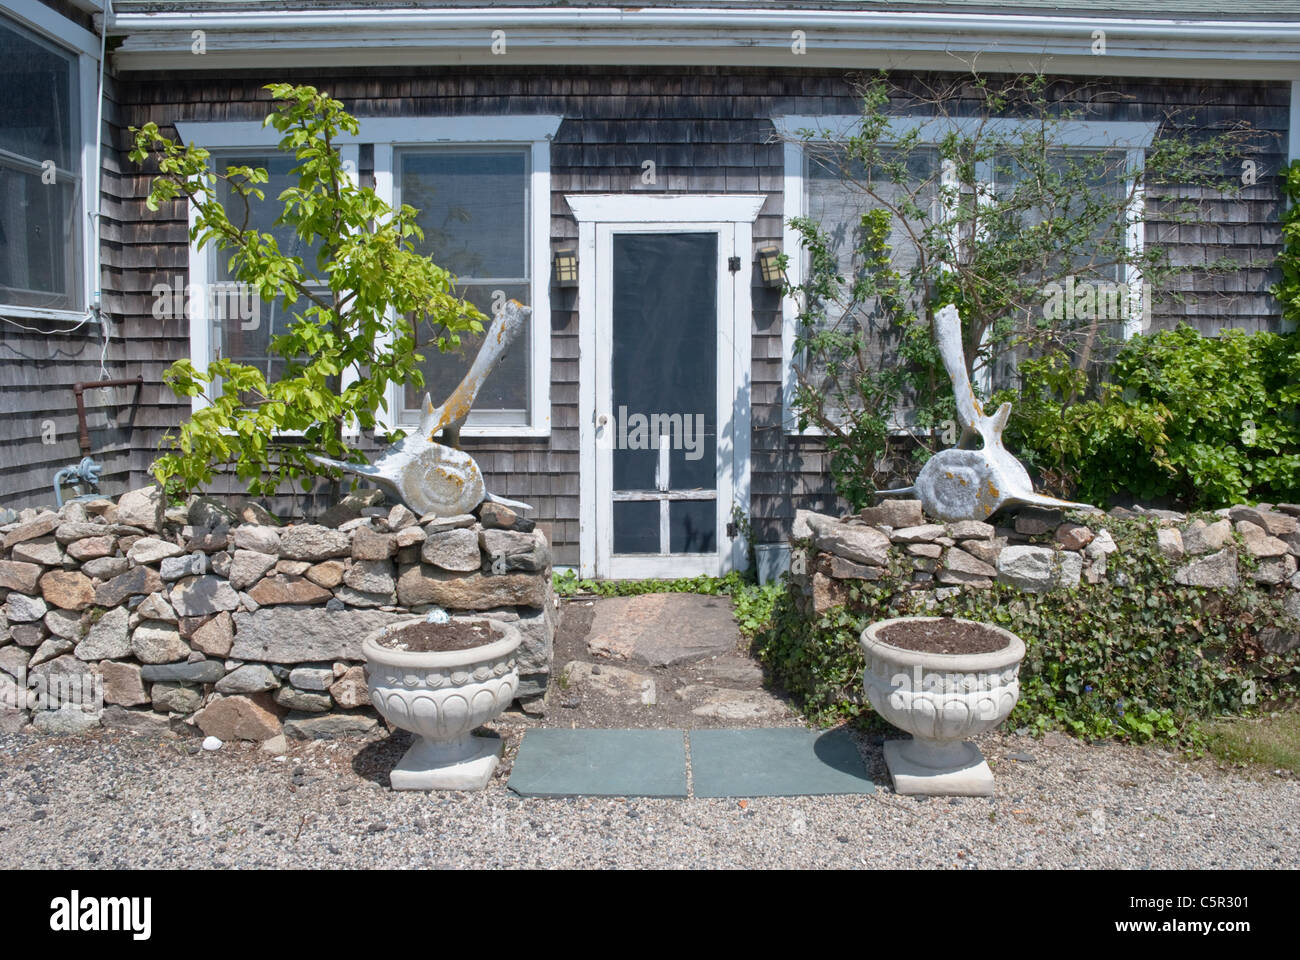 Whale vertebrae make interesting conversation pieces in front of an historic home in old Westport, Massachusetts. - Stock Image